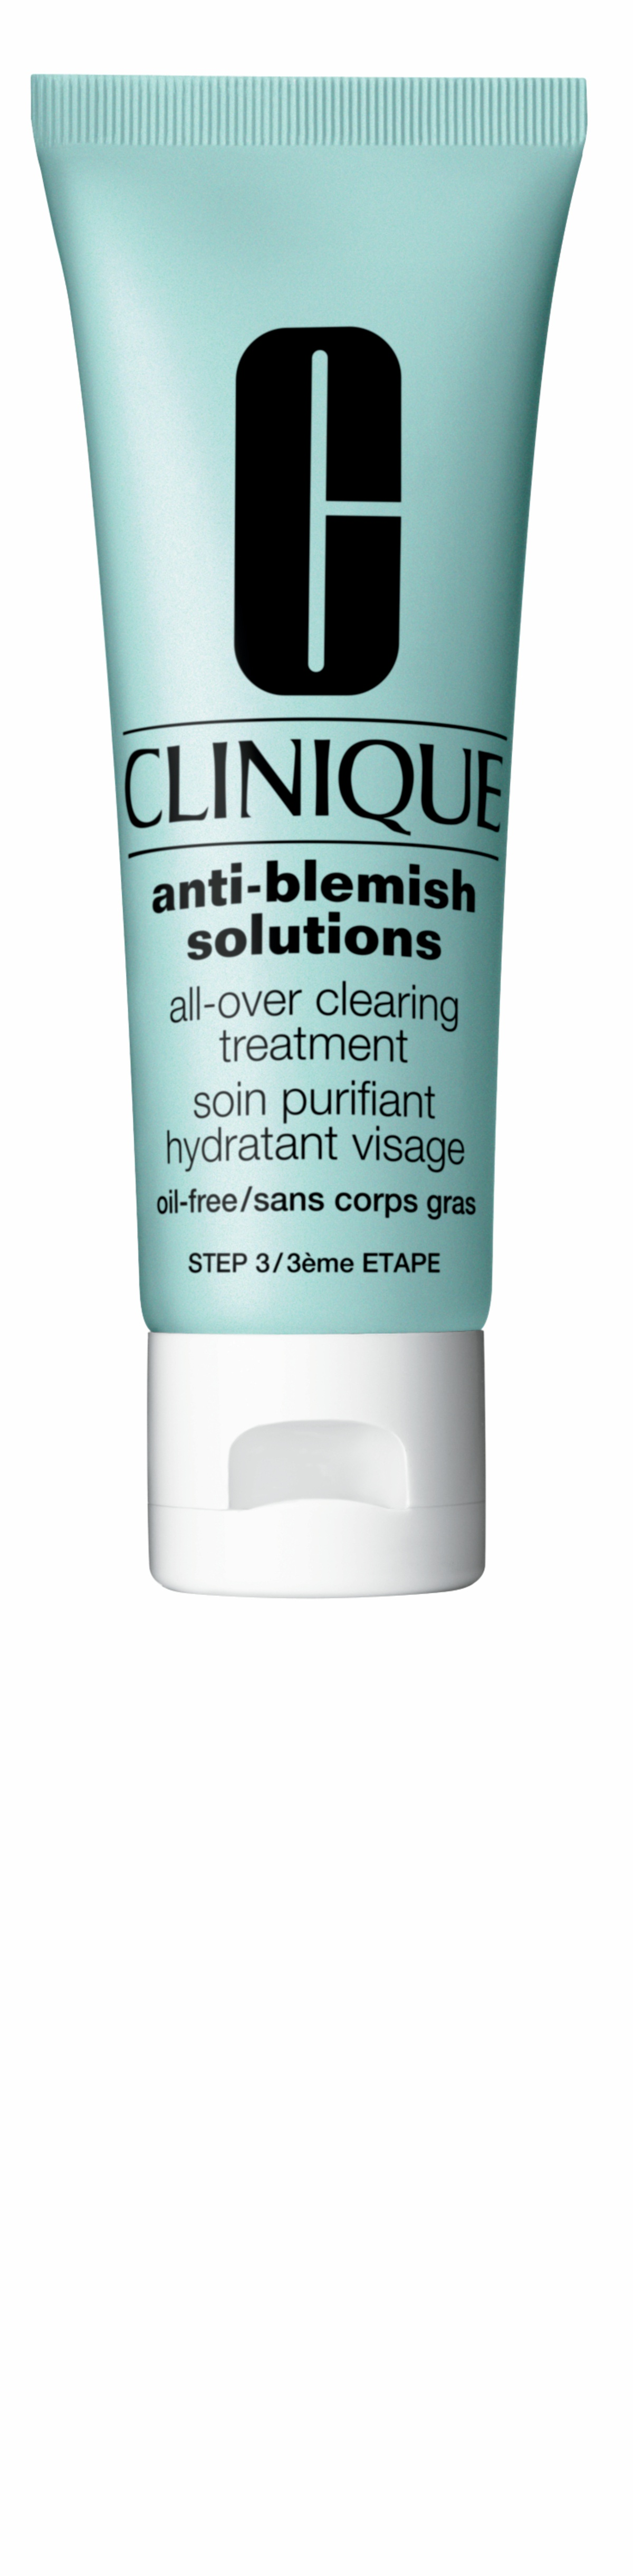 Clinique Anti-Blemish Solutions All-Over Clearing Treatment, 50 ml